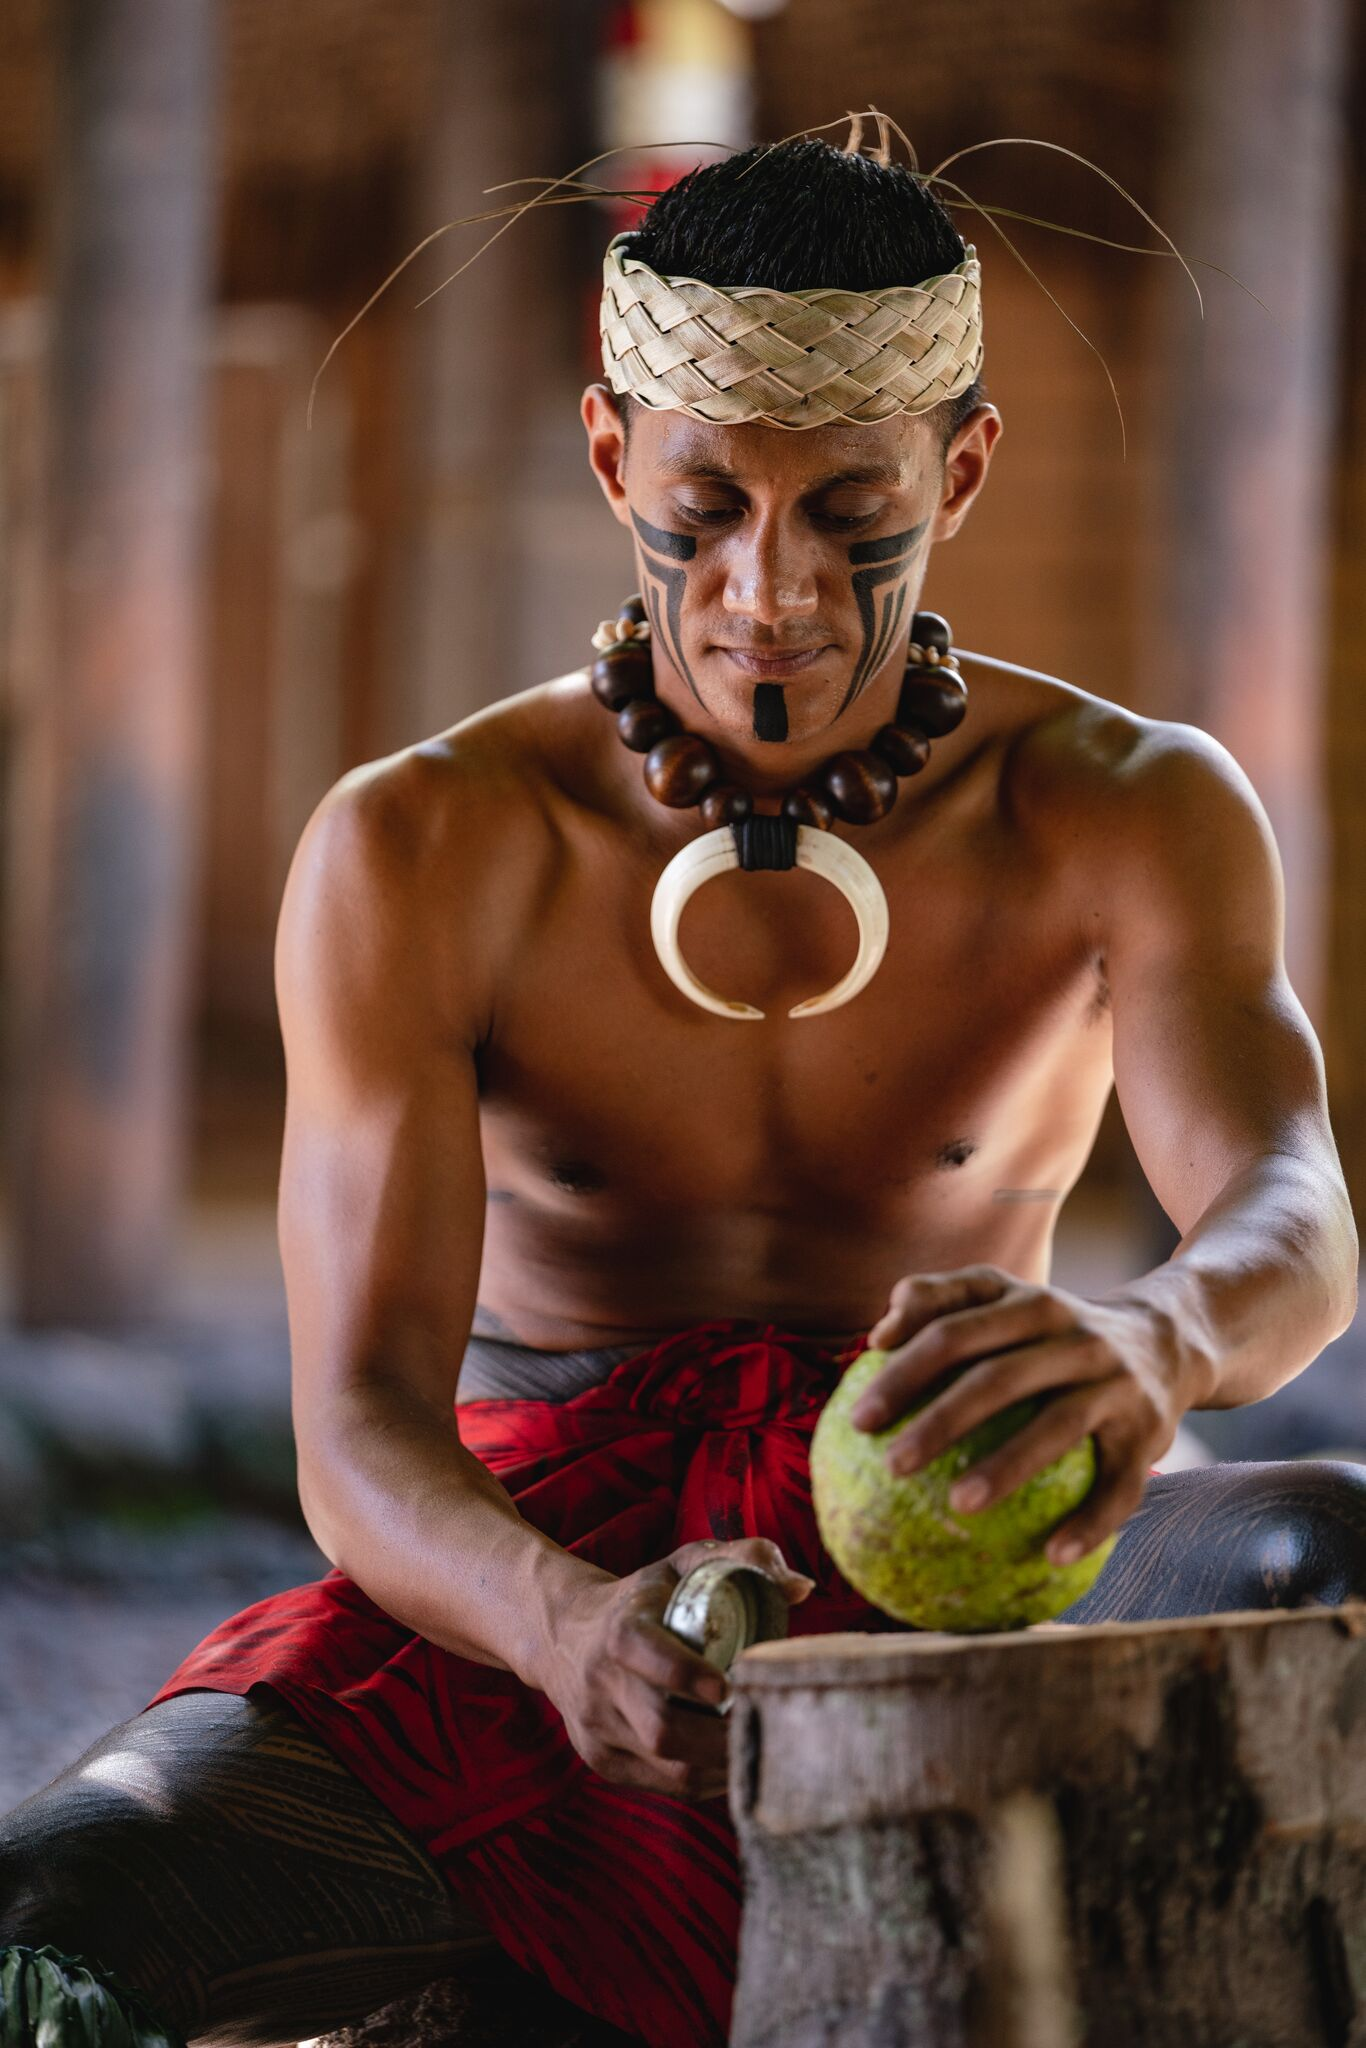 Picture: Preparing breadfruit in the Samoan Village at the Polynesian Cultural Center